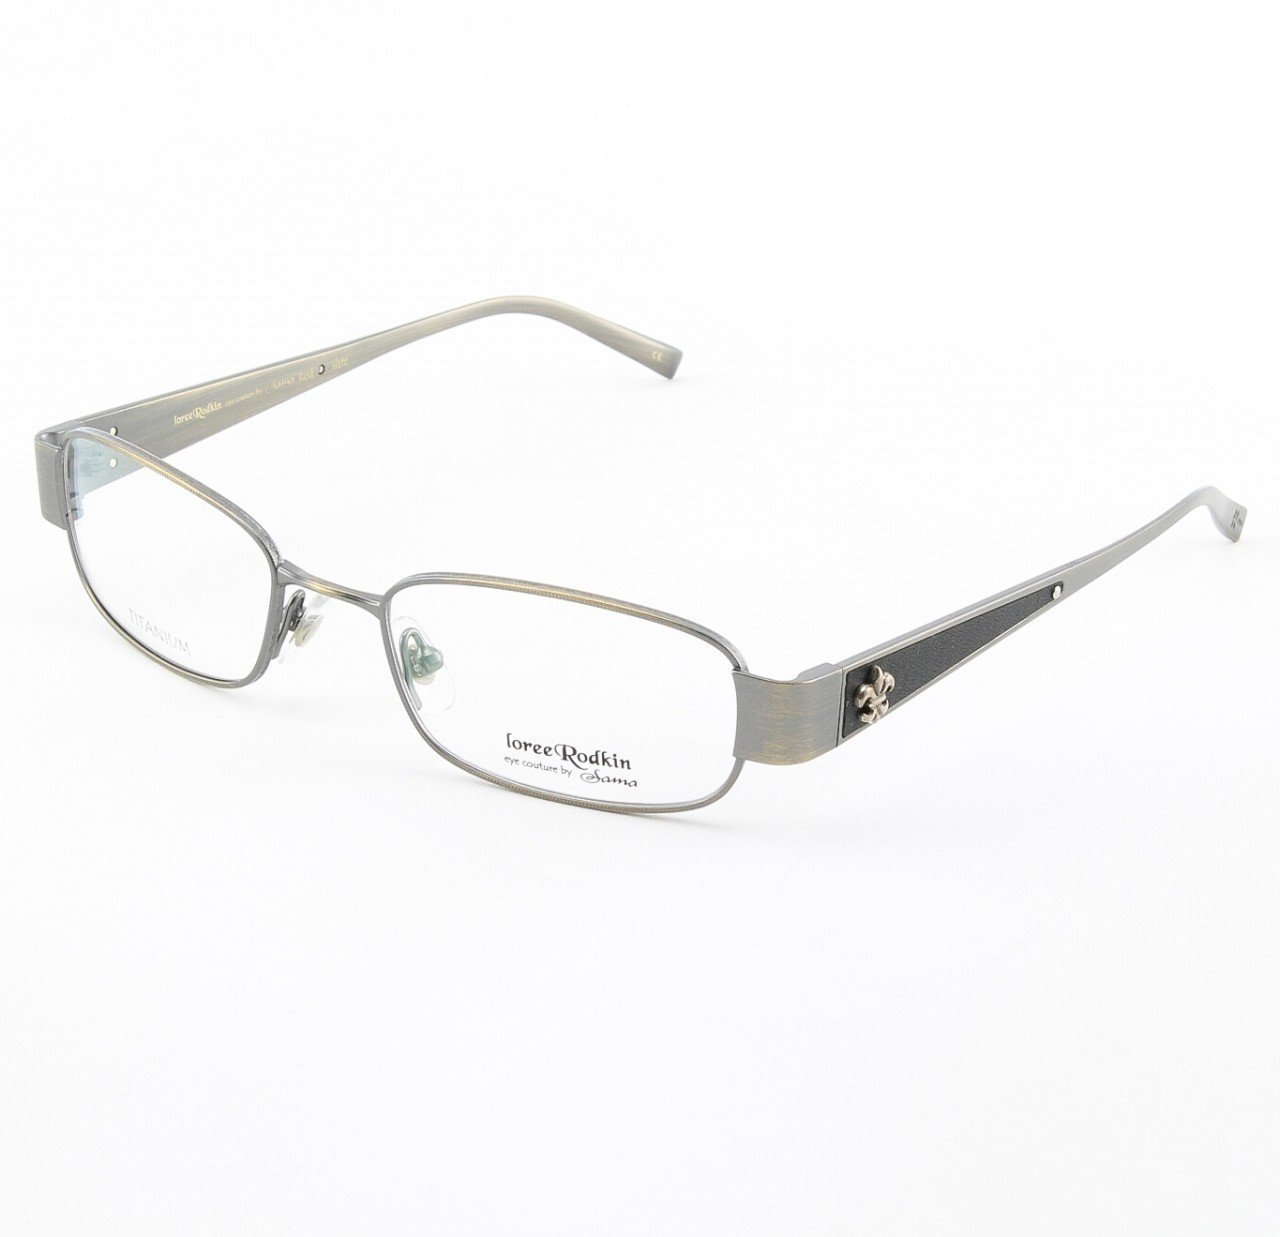 Loree Rodkin Rod Eyeglasses by Sama Col. Slate with Clear Lenses, Leather and Sterling Silver